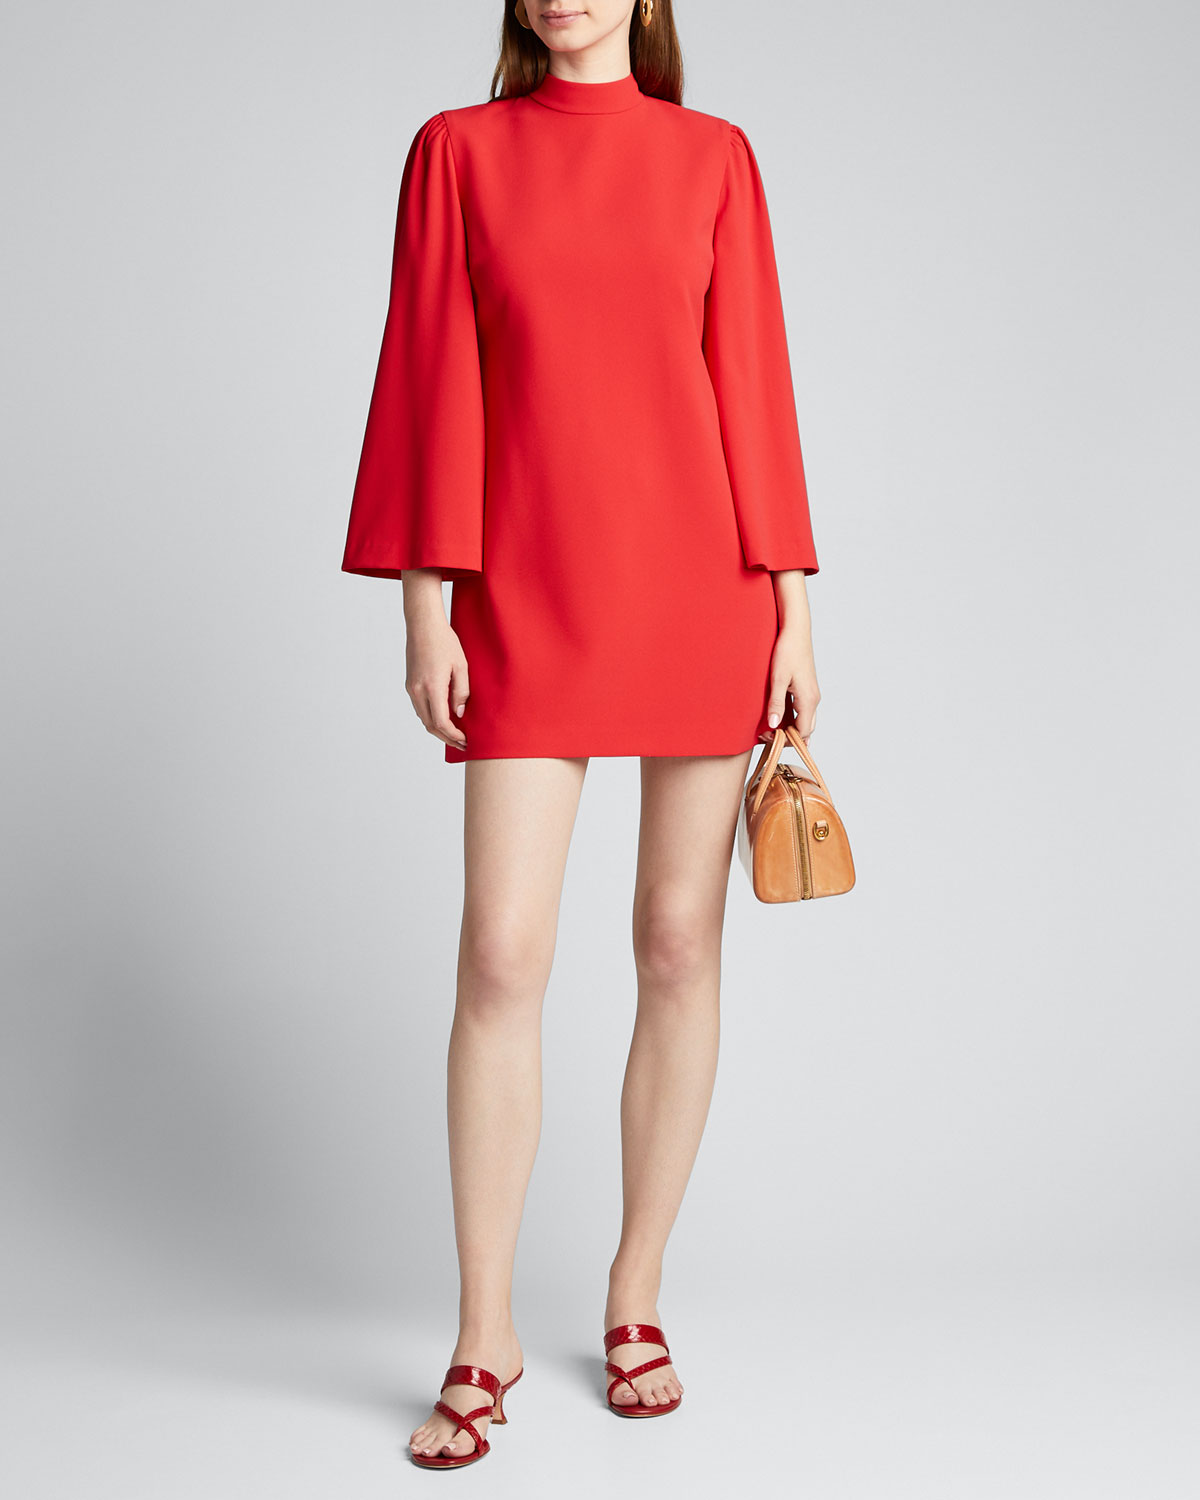 Alice And Olivia Dresses BAILEY BELL-SLEEVE DRESS